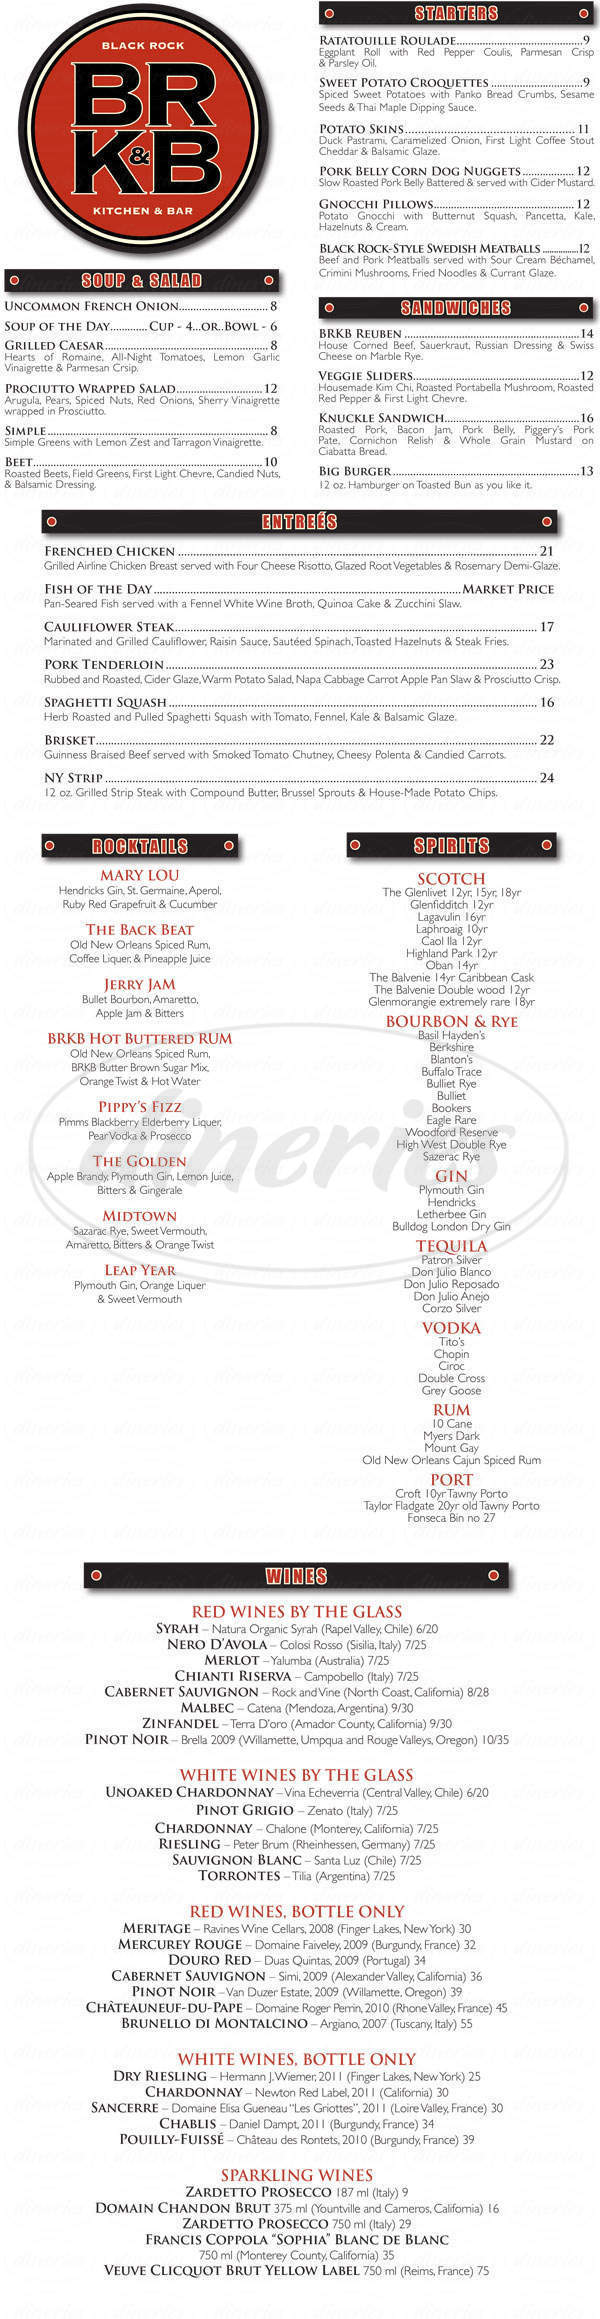 menu for Black Rock Kitchen & Bar